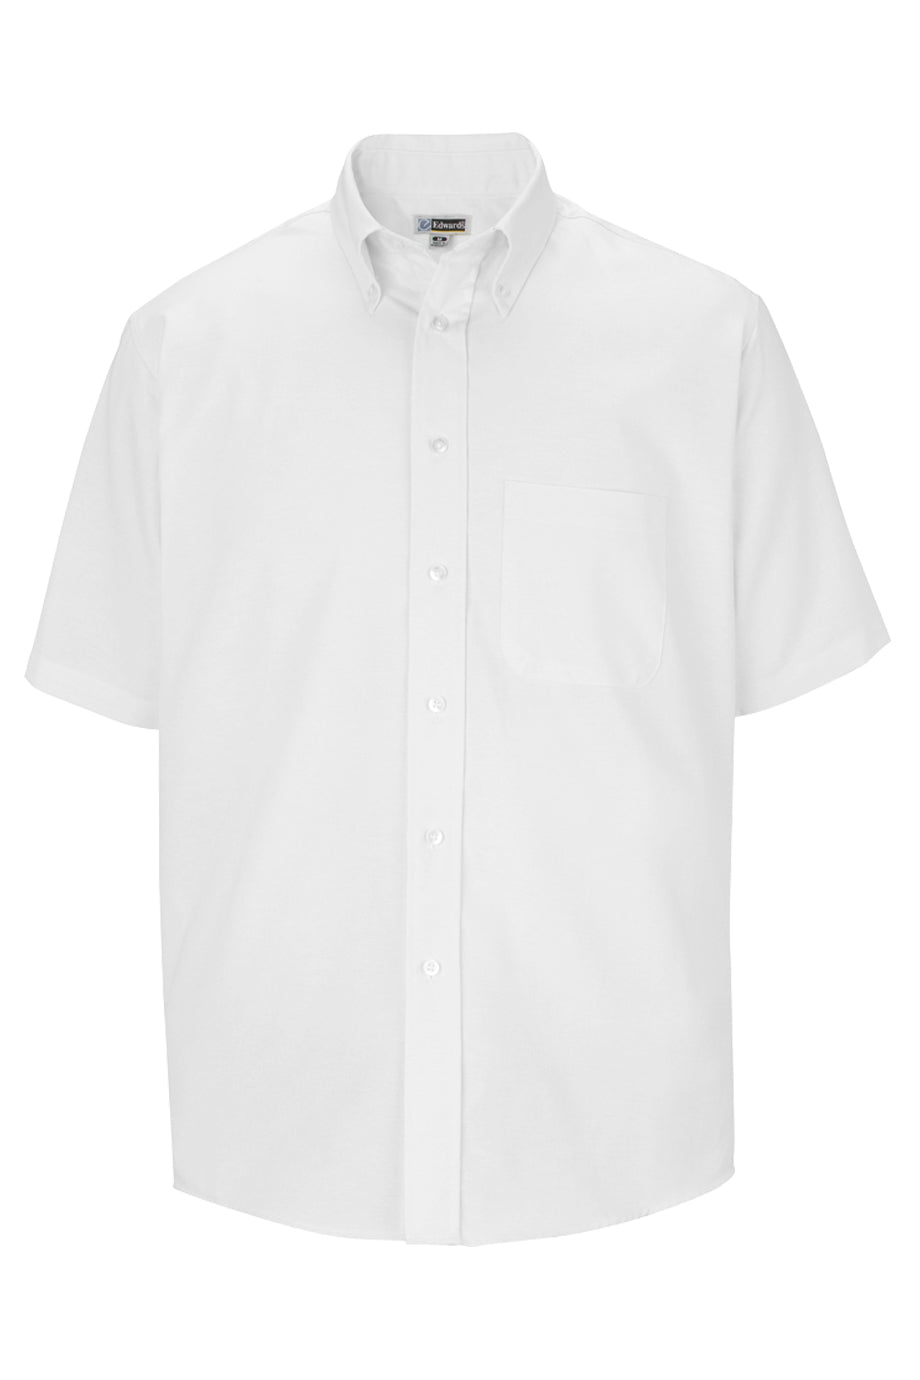 Edwards Mens Short Sleeve Oxford Shirt